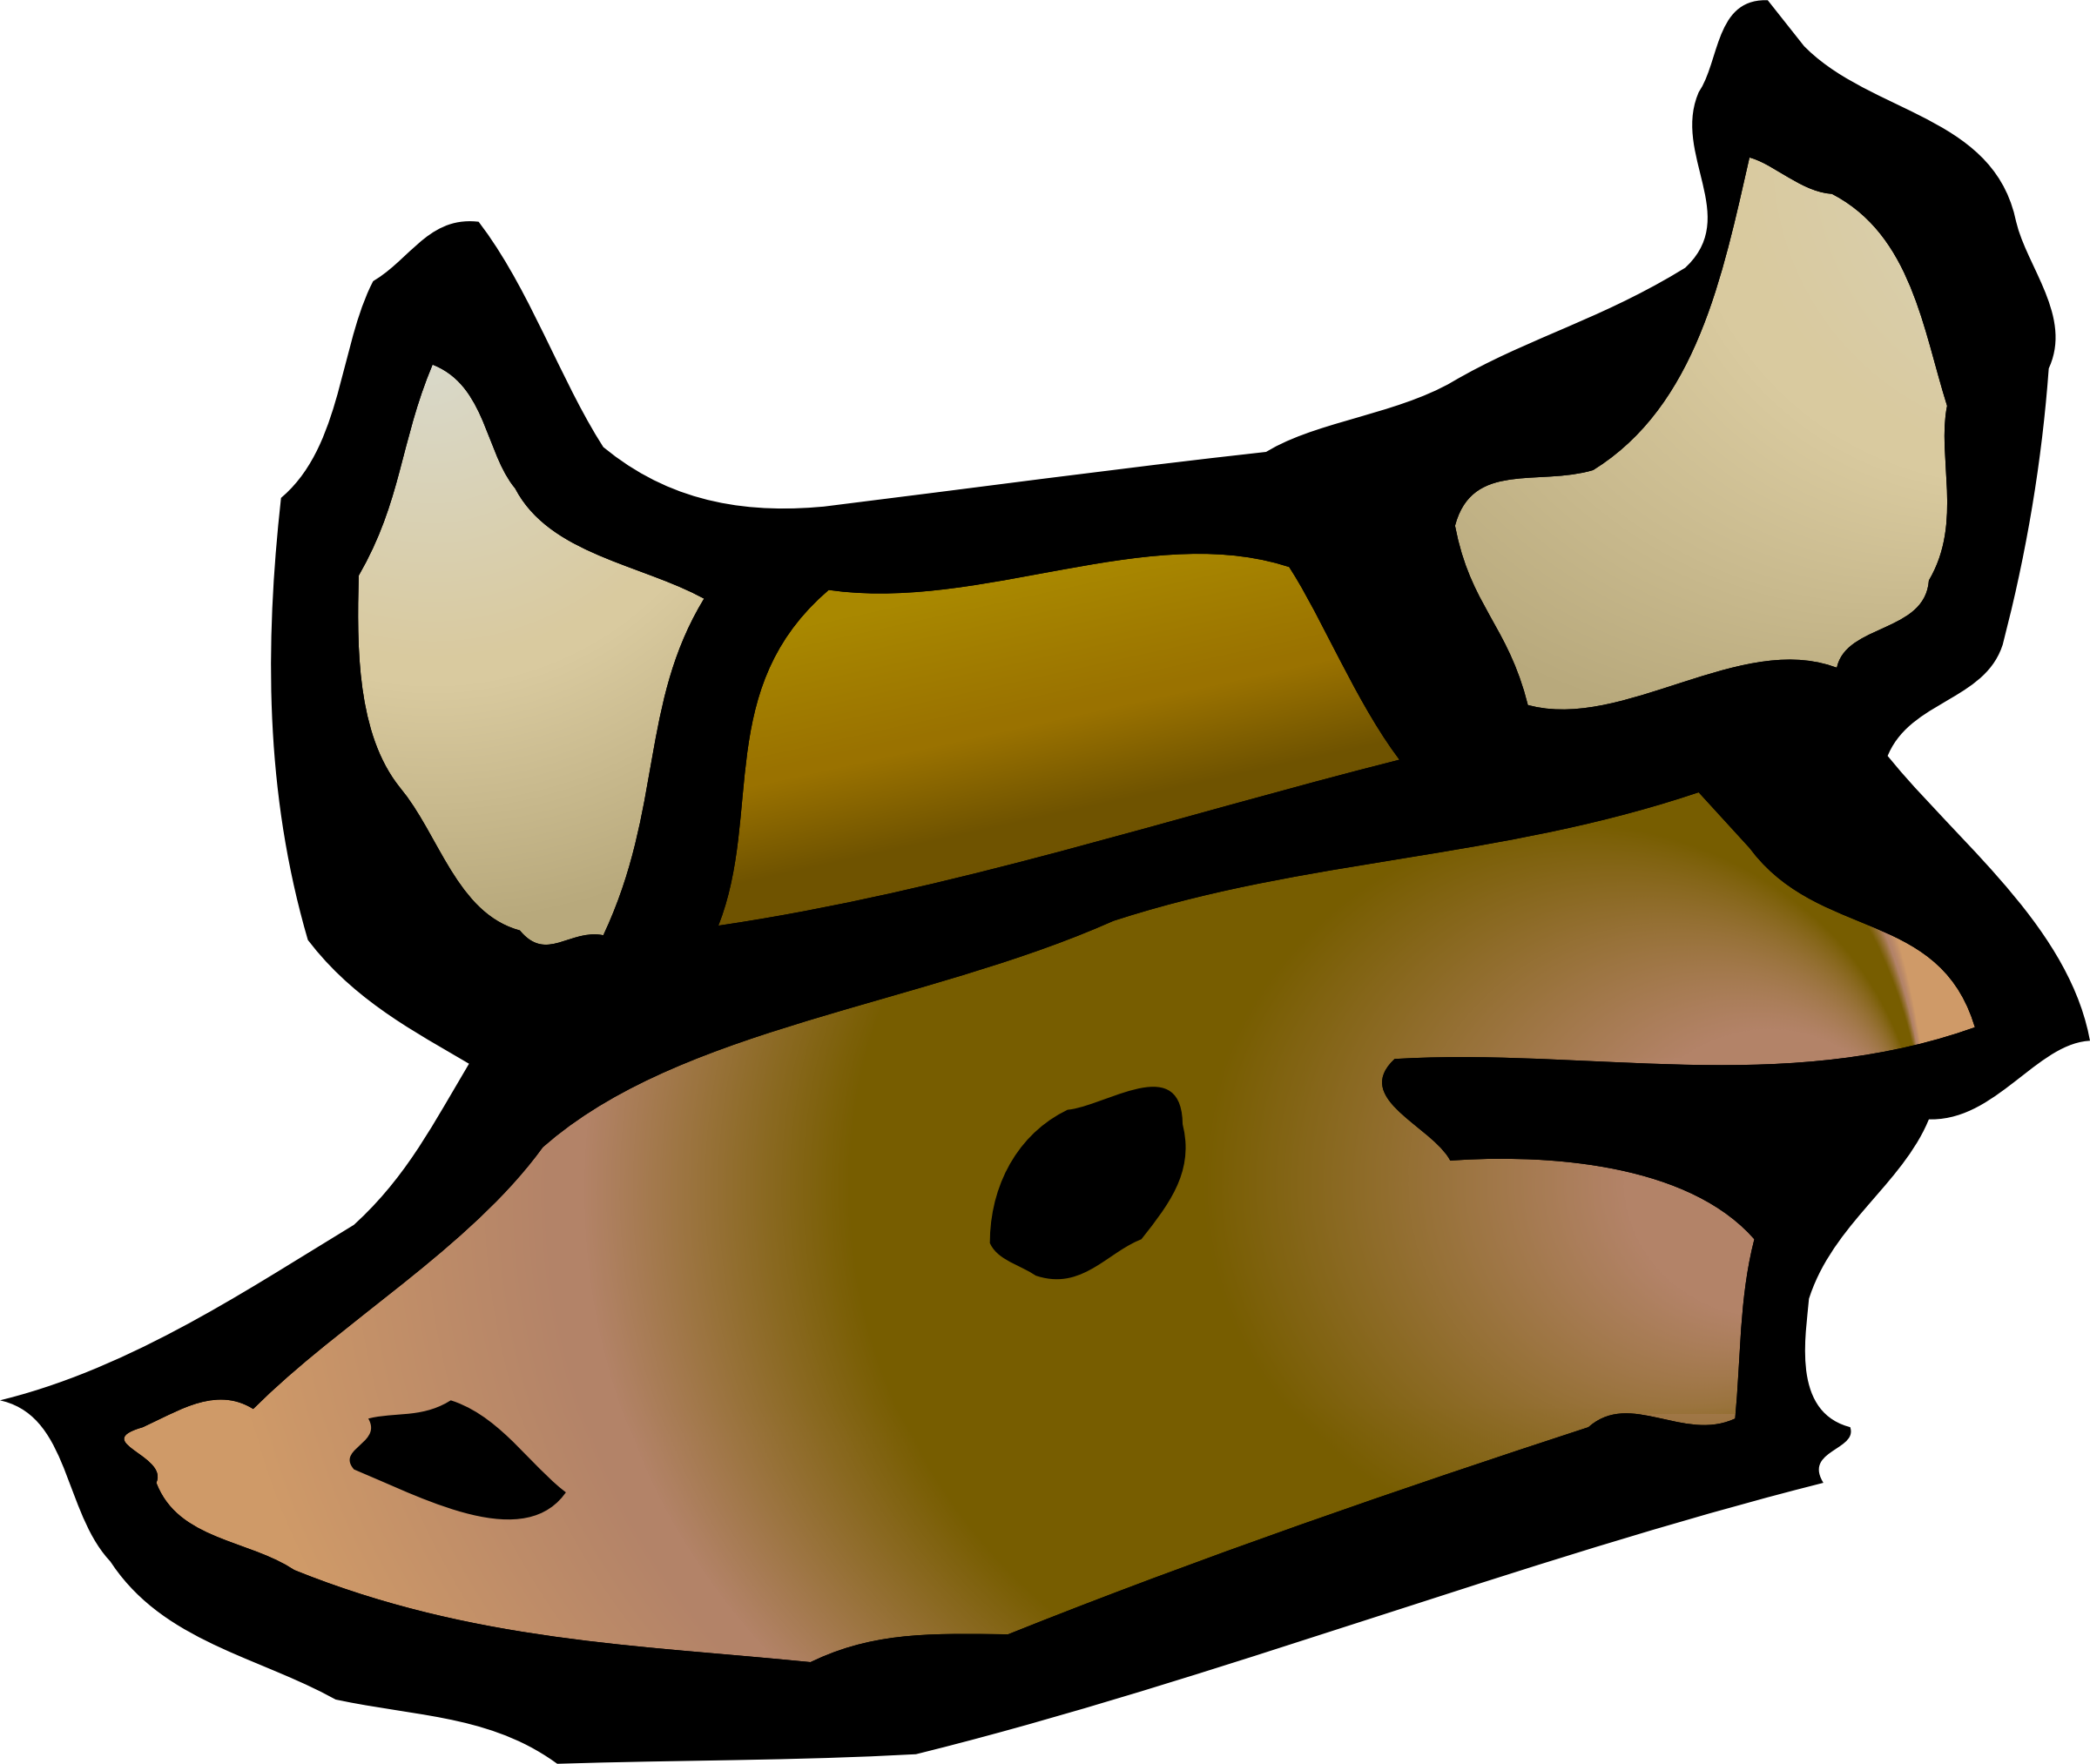 ox icon by Klàro